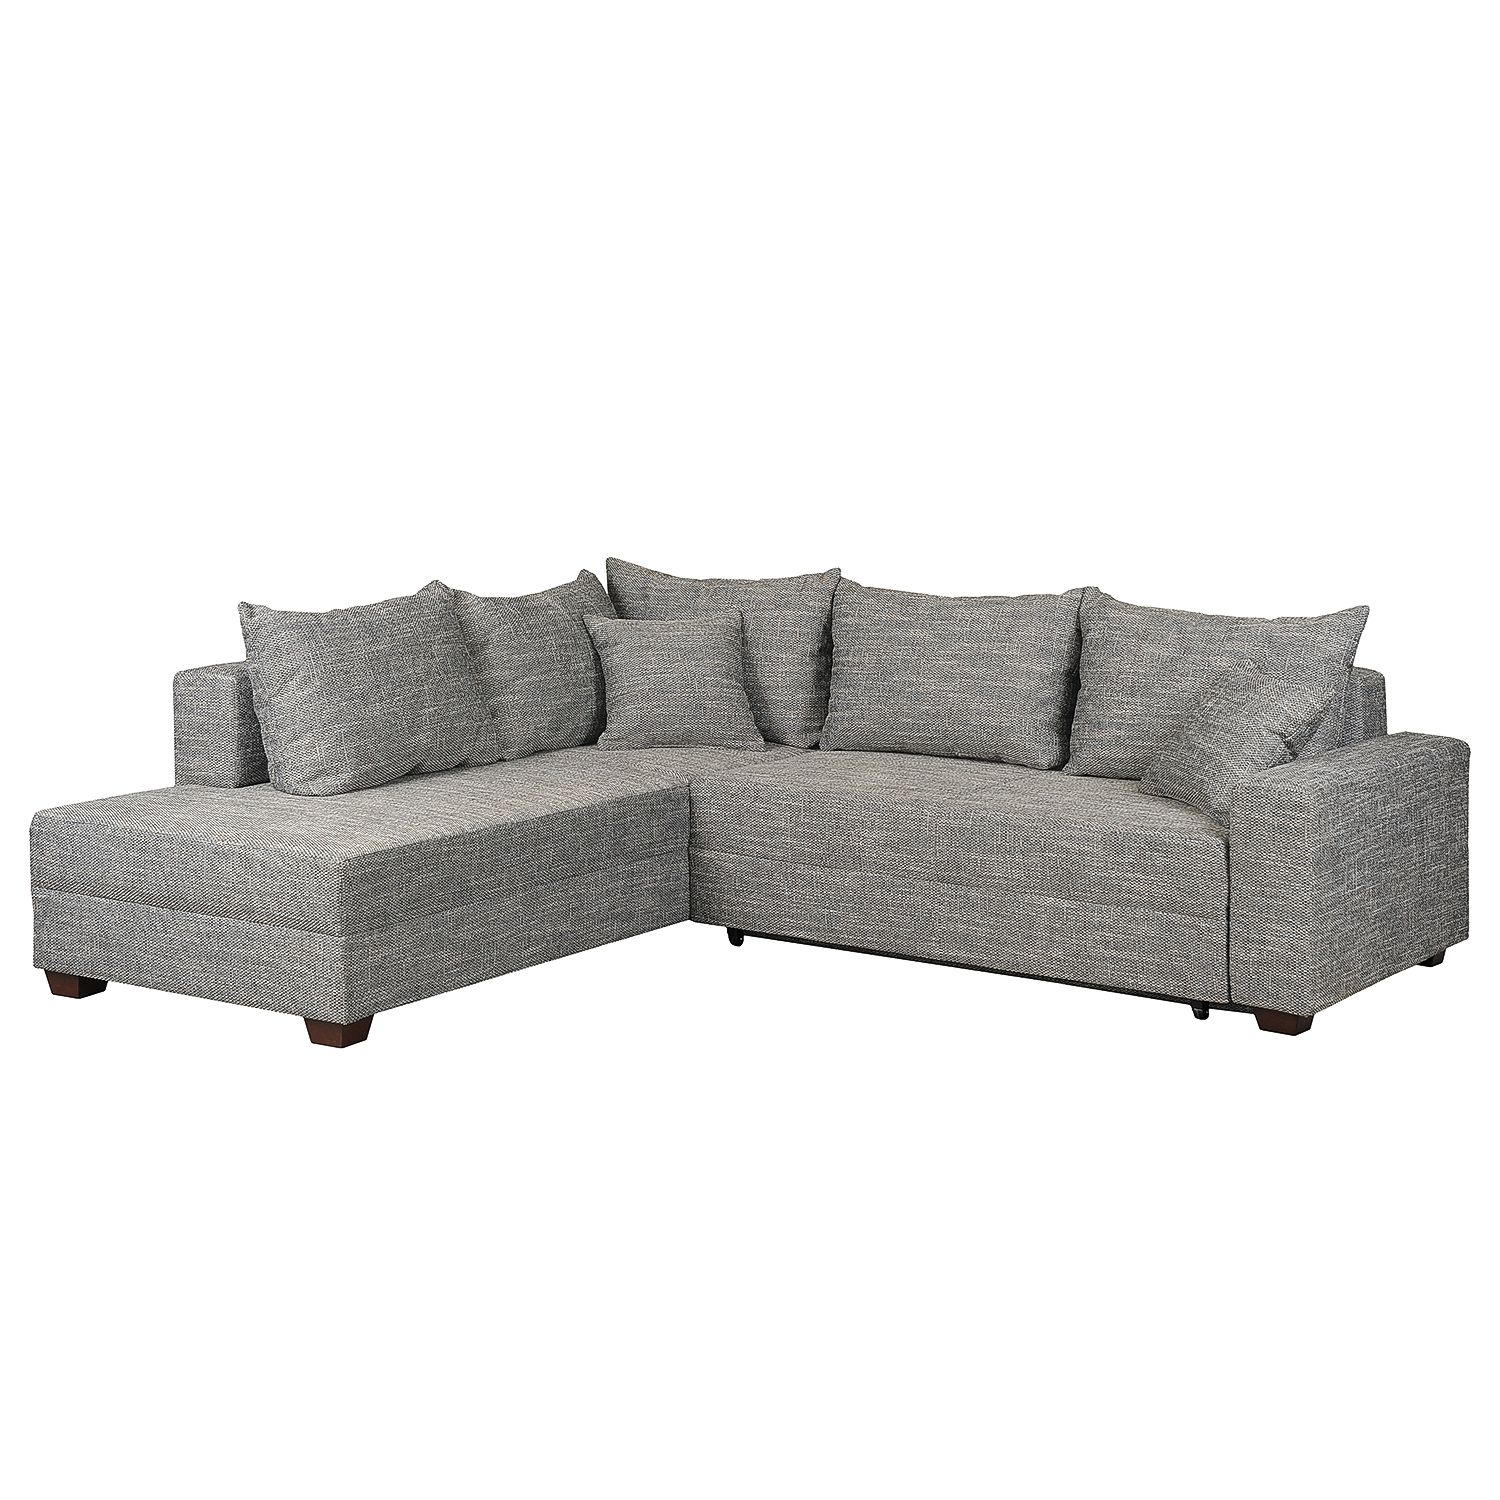 Billiges Ecksofa Billig Sofa Mit Schlaffunktion